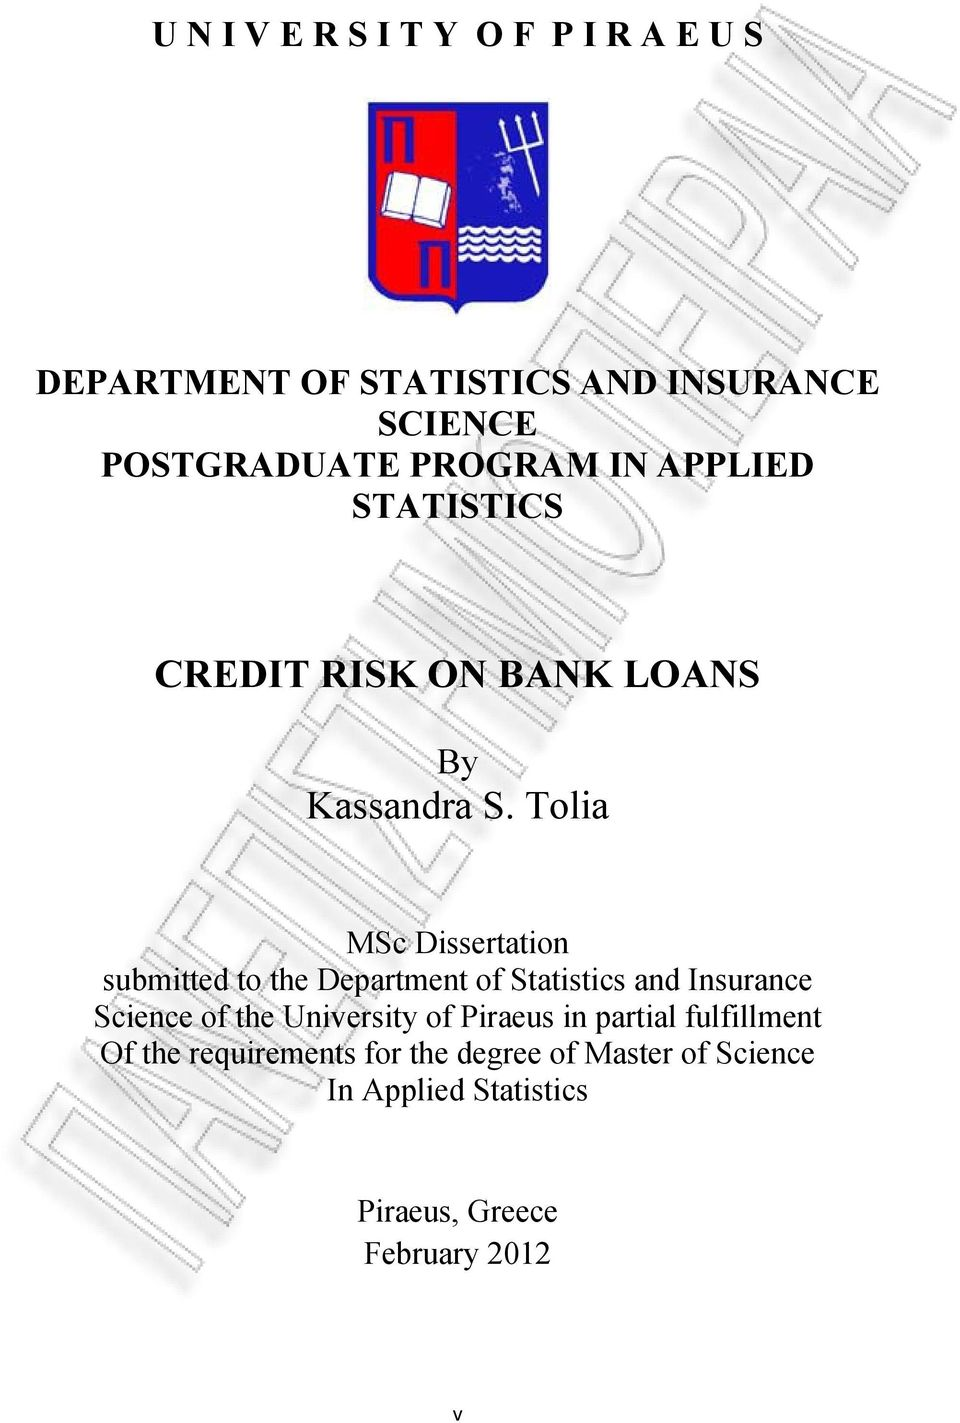 Tolia MSc Dissertation submitted to the Department of Statistics and Insurance Science of the University